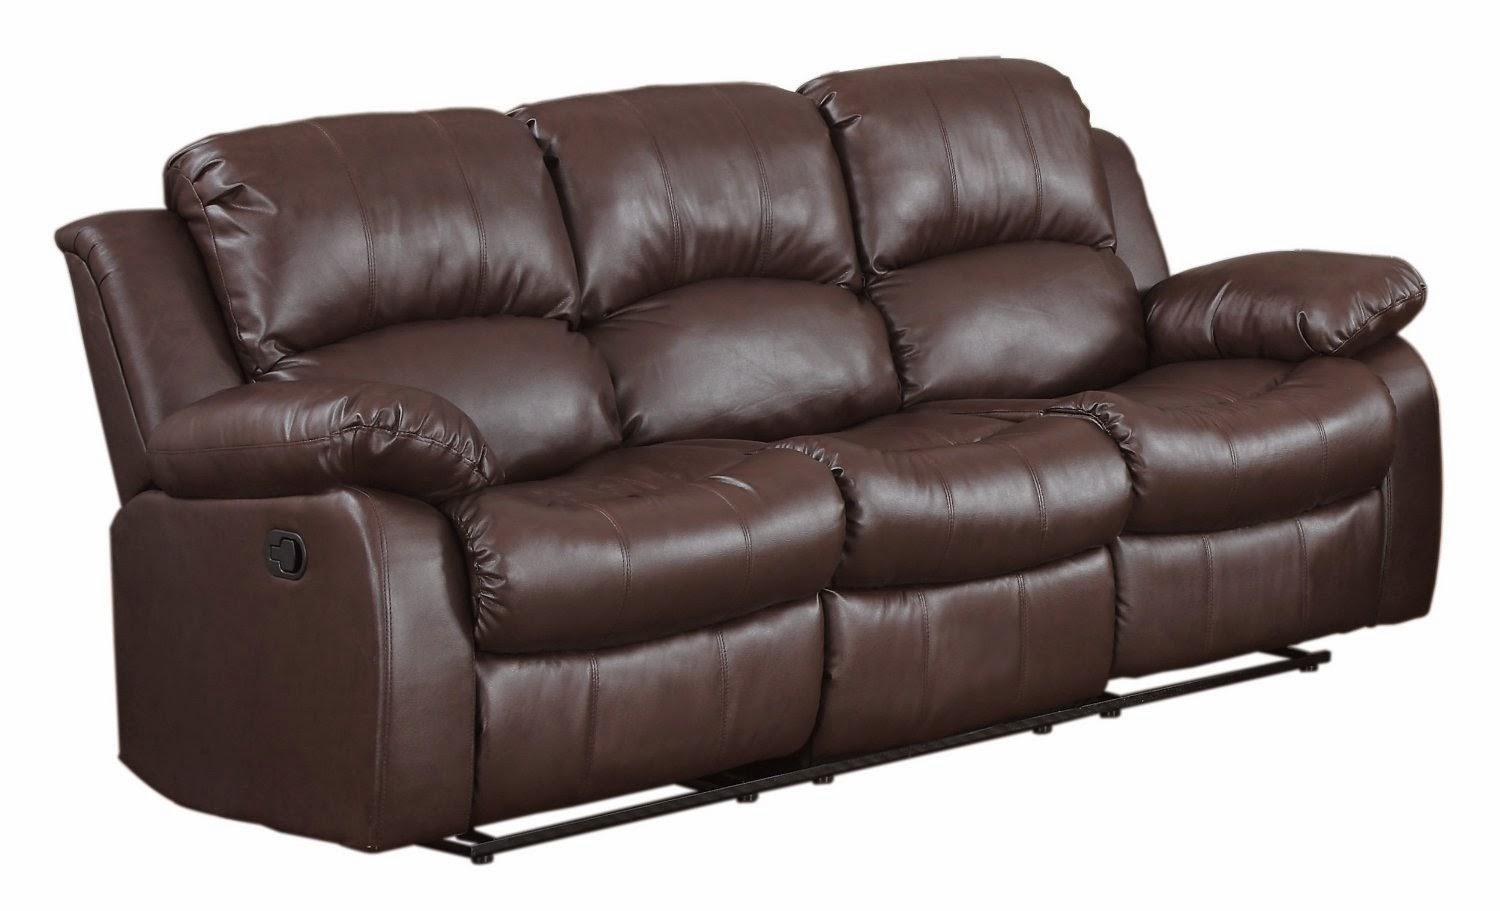 Leather Recliner Chairs On Sale Cow Hide Dining Best Recliners